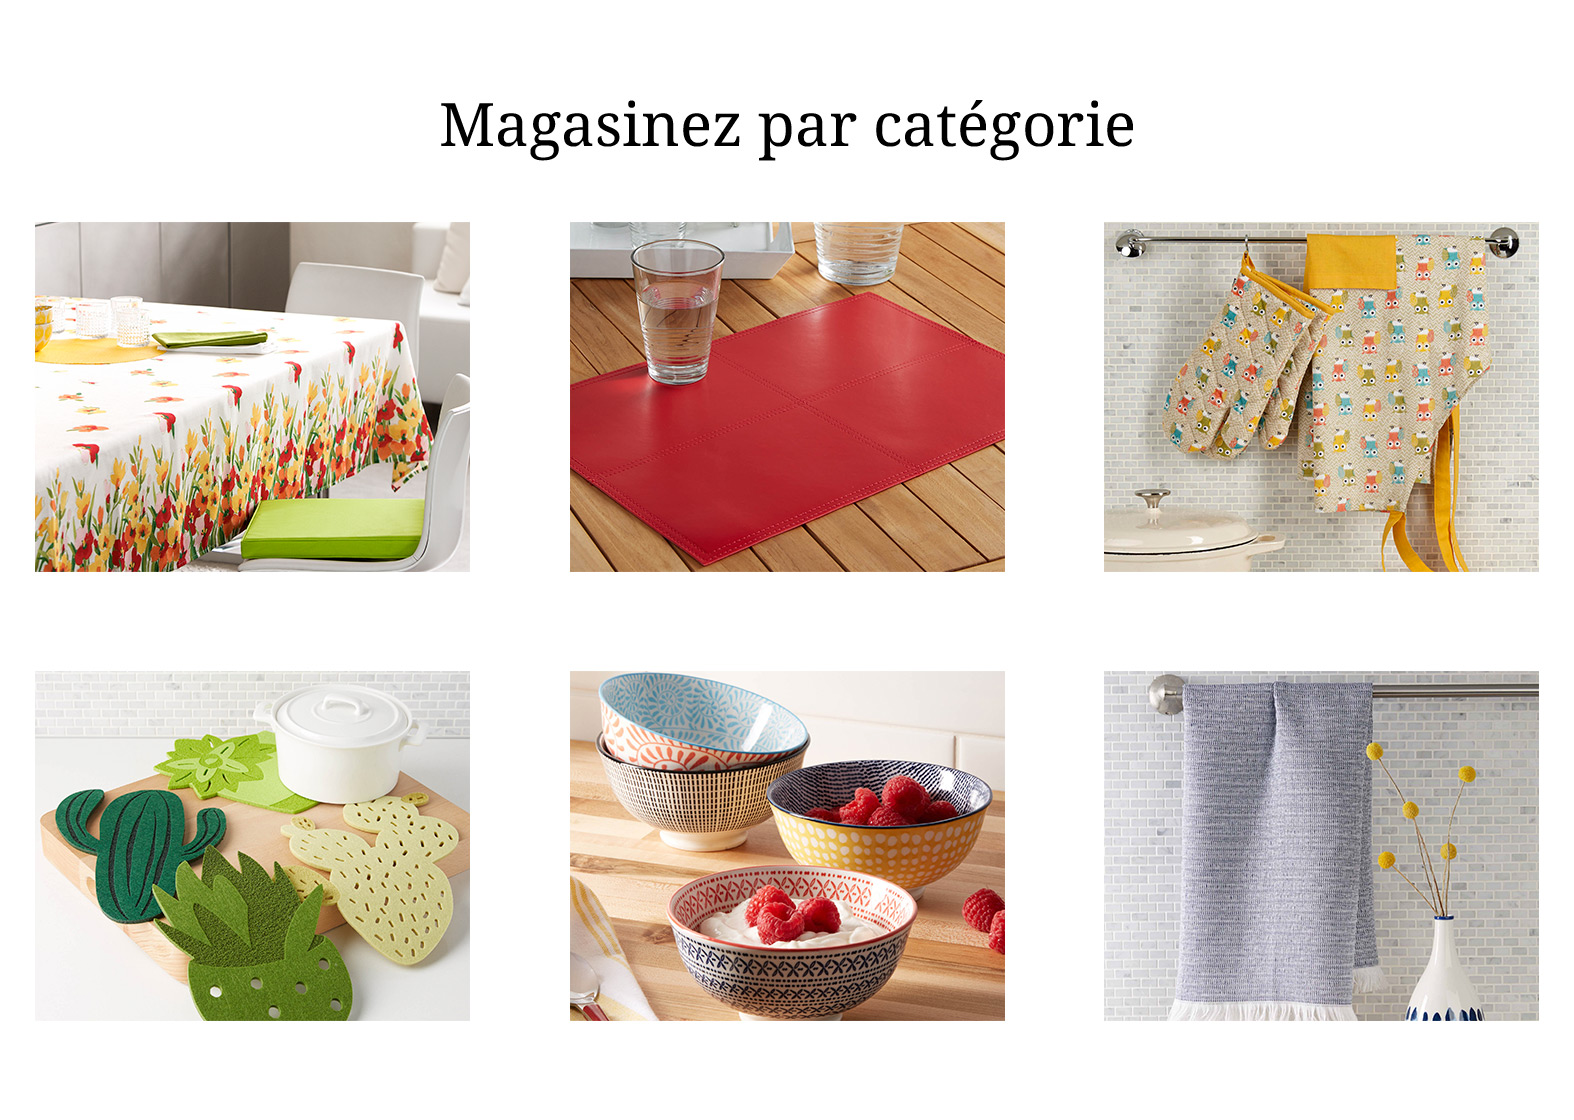 01-P19-MS-MAISON-CUISINE-Categories-01-V1.psd